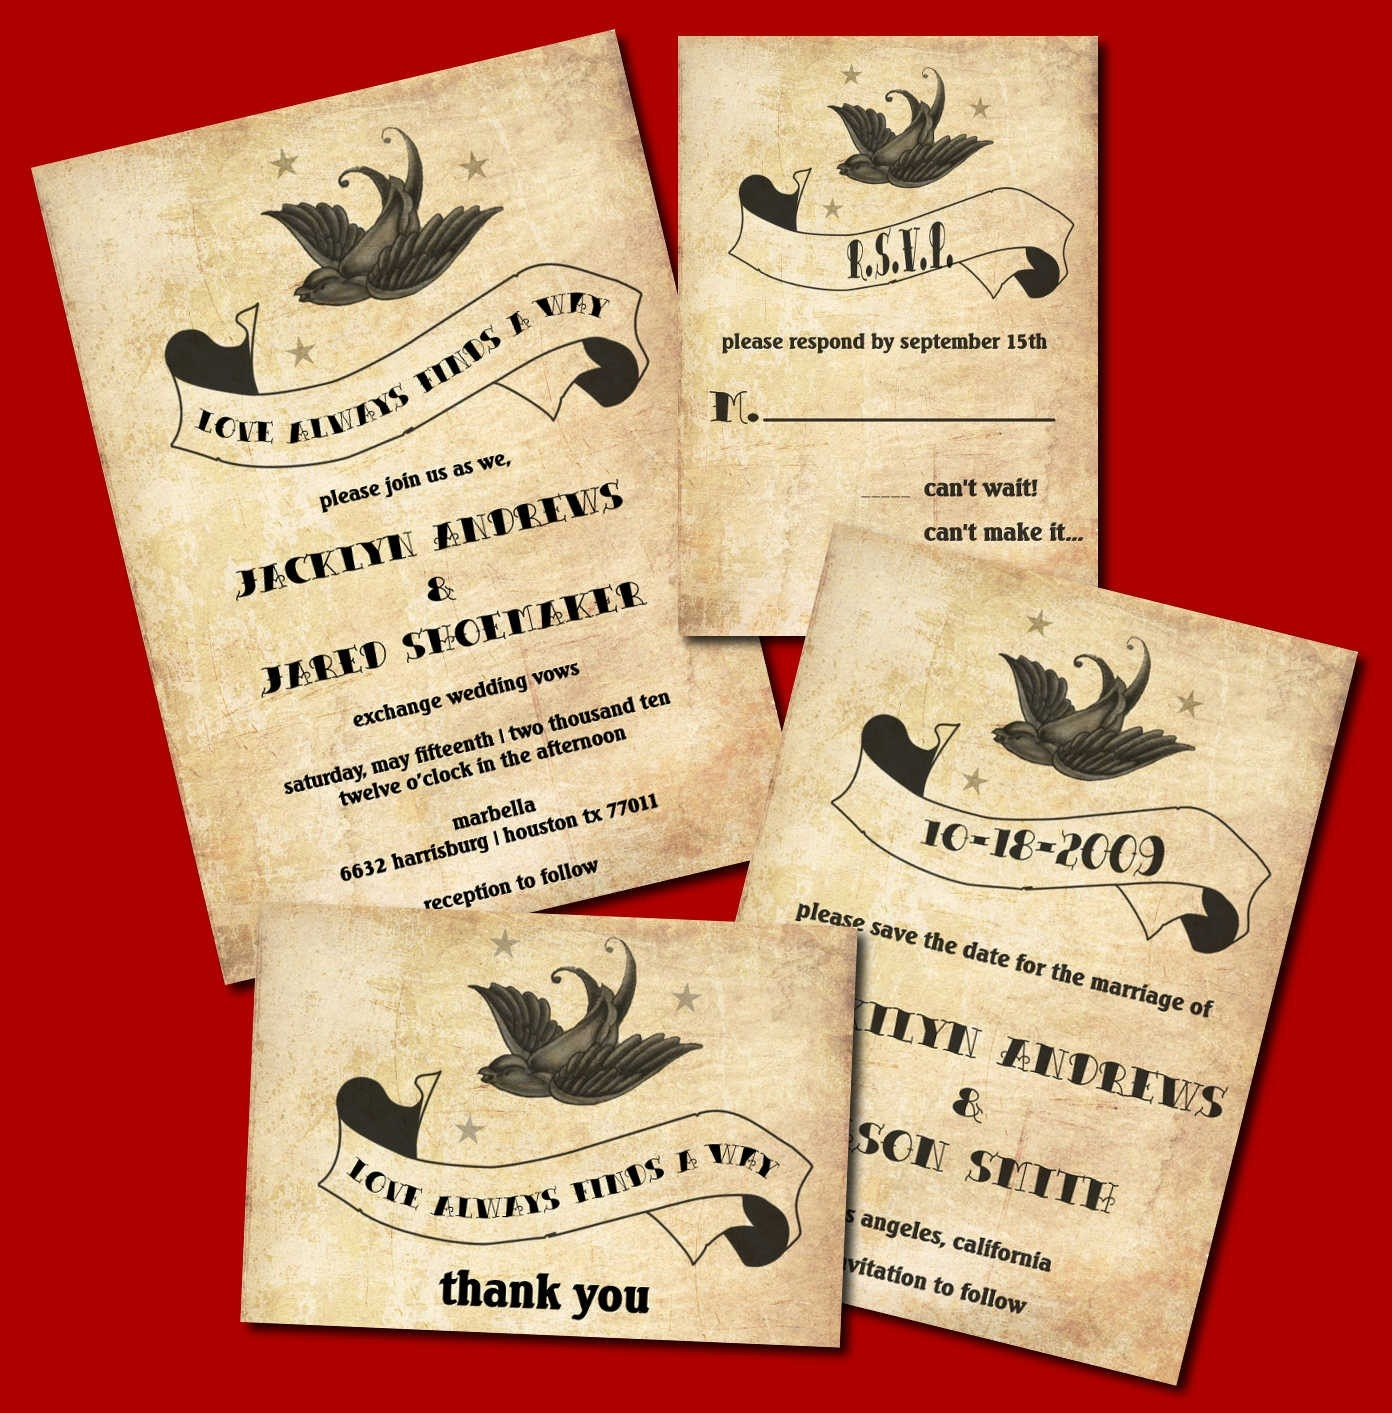 Milan Parade Mode Rockabilly Wedding Invitation Set Featuring A Sparrow Banner And Stars